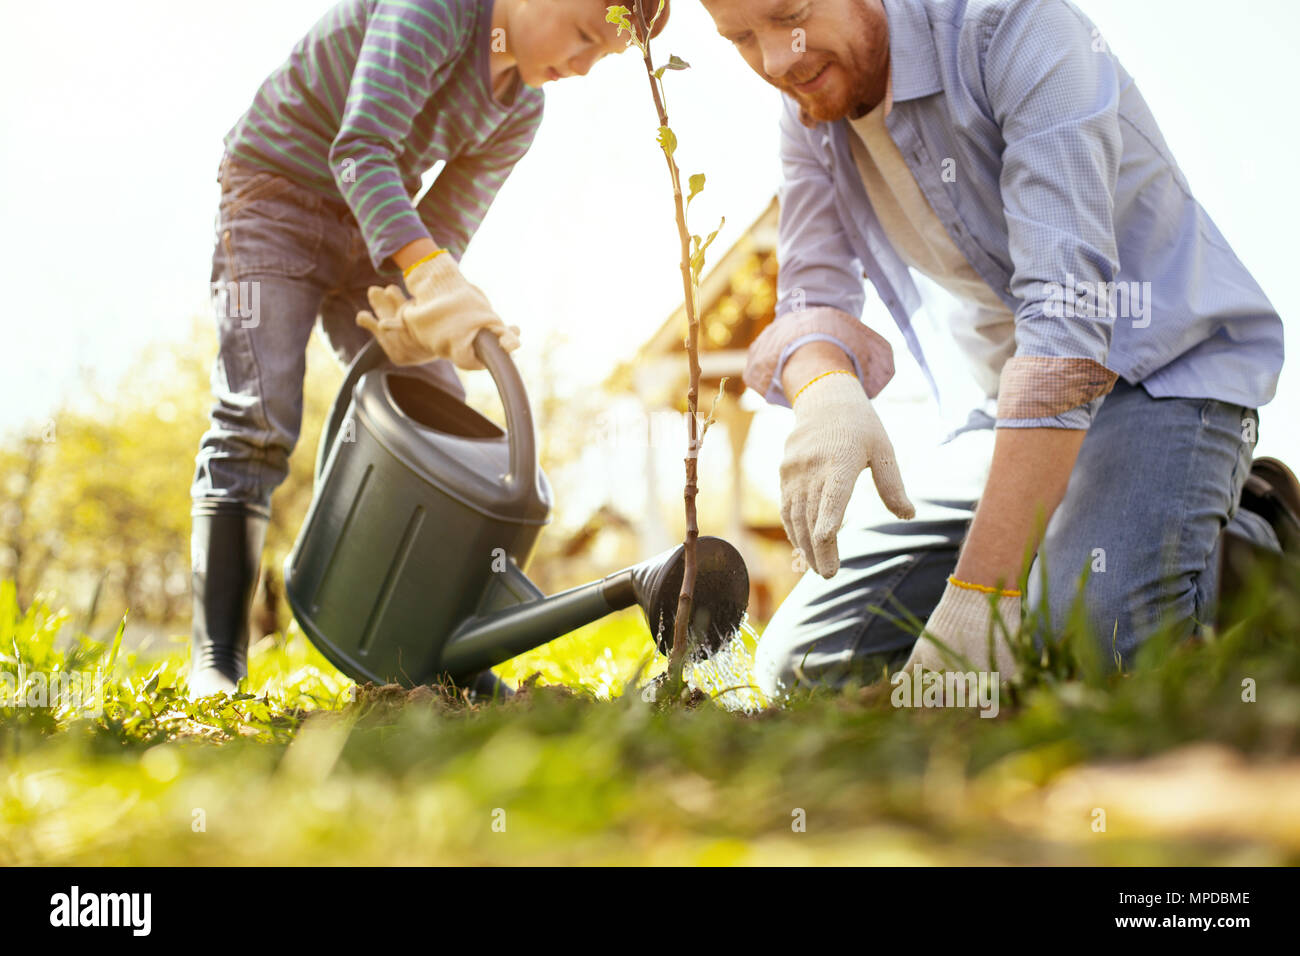 Father and son watering the tree - Stock Image